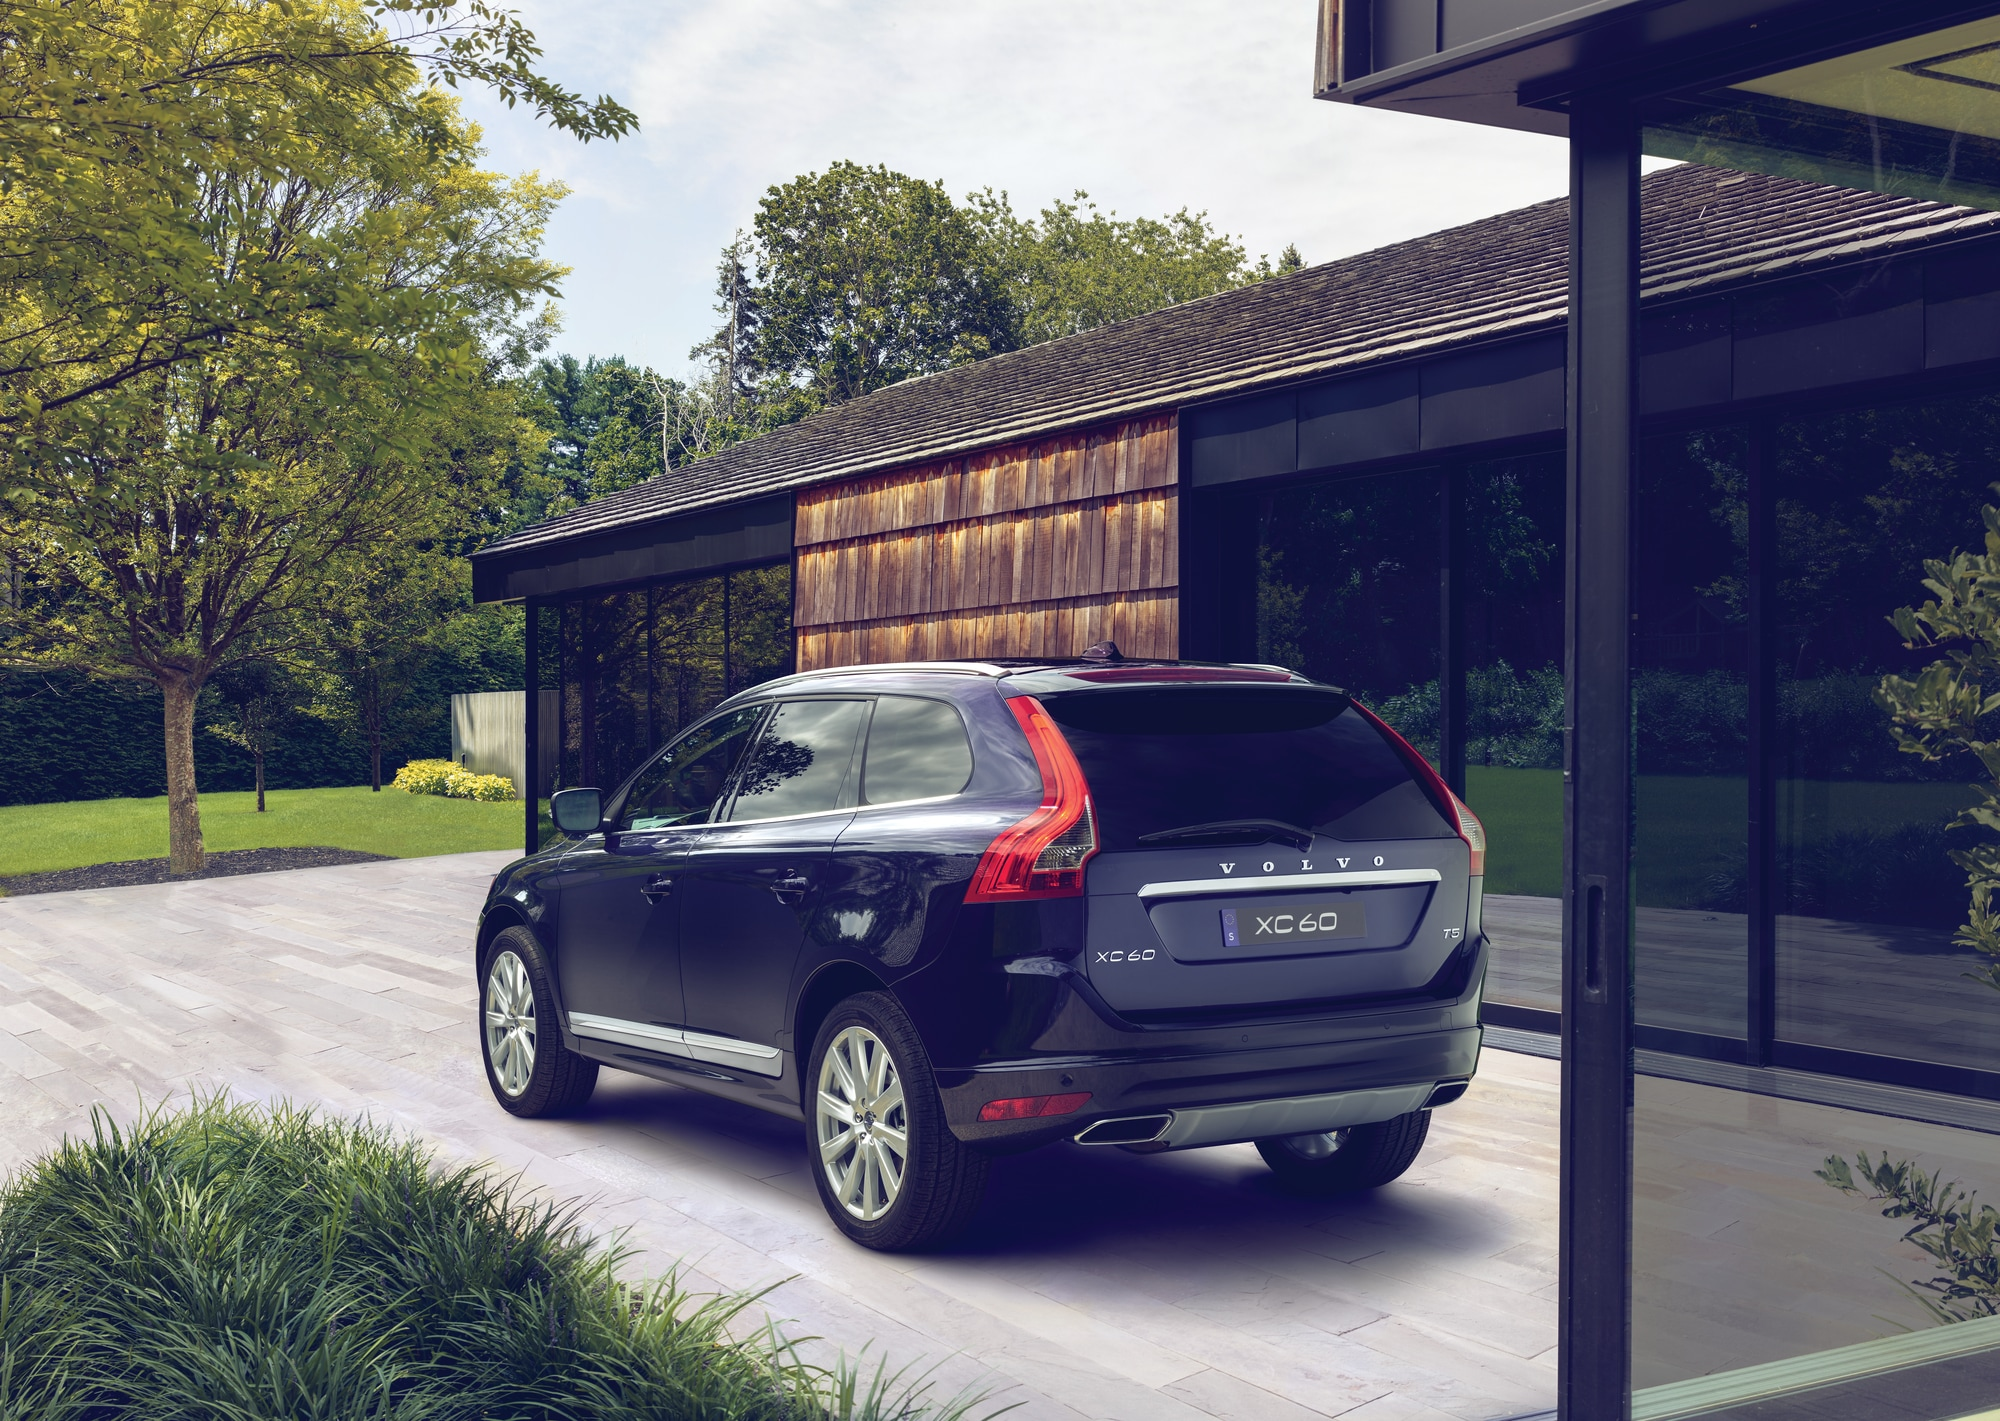 the leasing select impartial pch full how does volvo momentum blog compare car drive a new test dashboard pcp deals lease mode people hire contract road diesel awd pro uk review